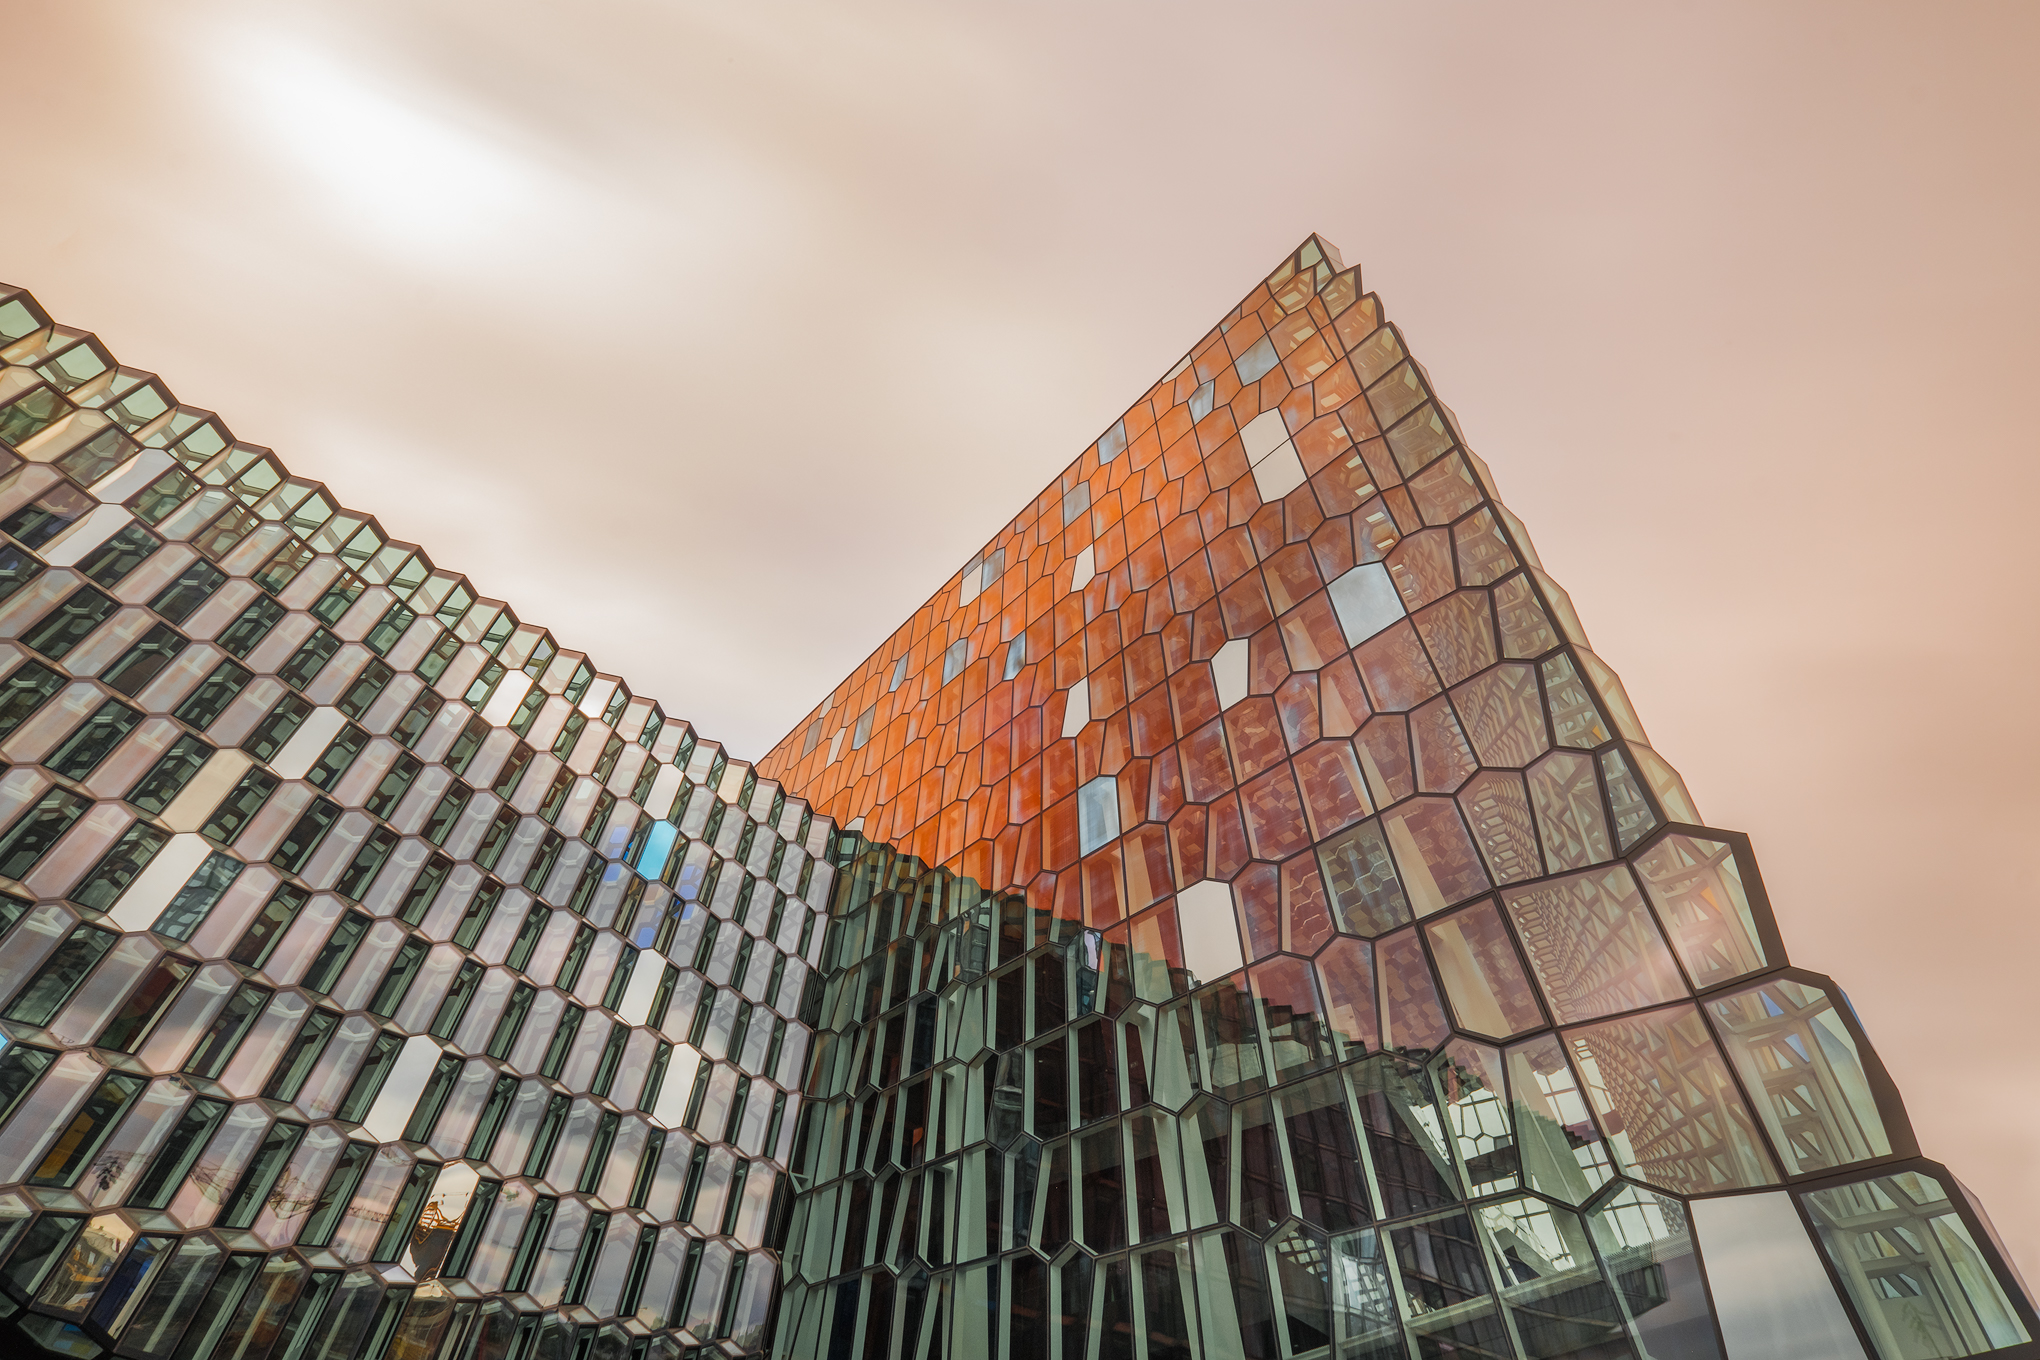 The Harpa glows red from reflected sunset light.